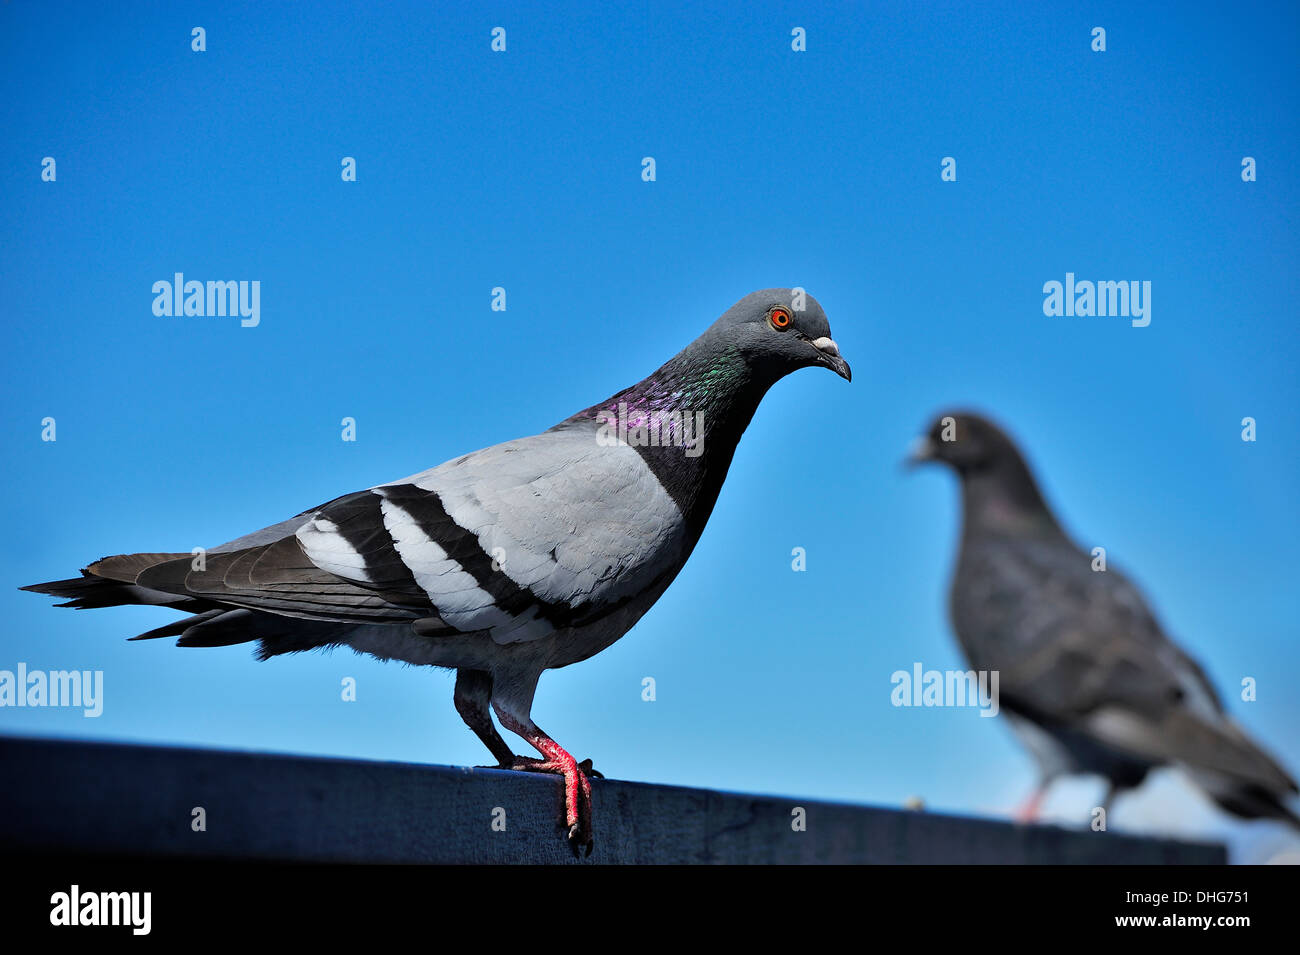 A common Rock Pigeon - Stock Image